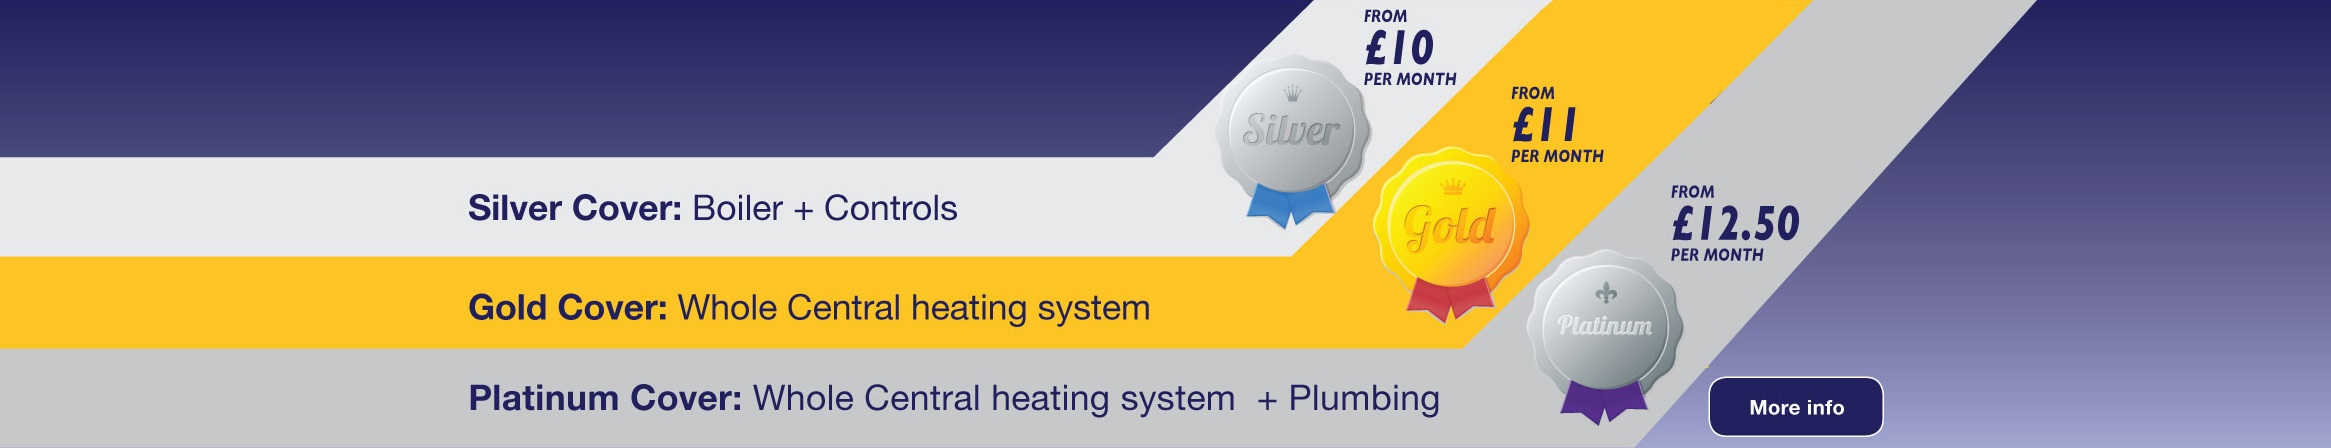 SOS Cover Plan Bramhall